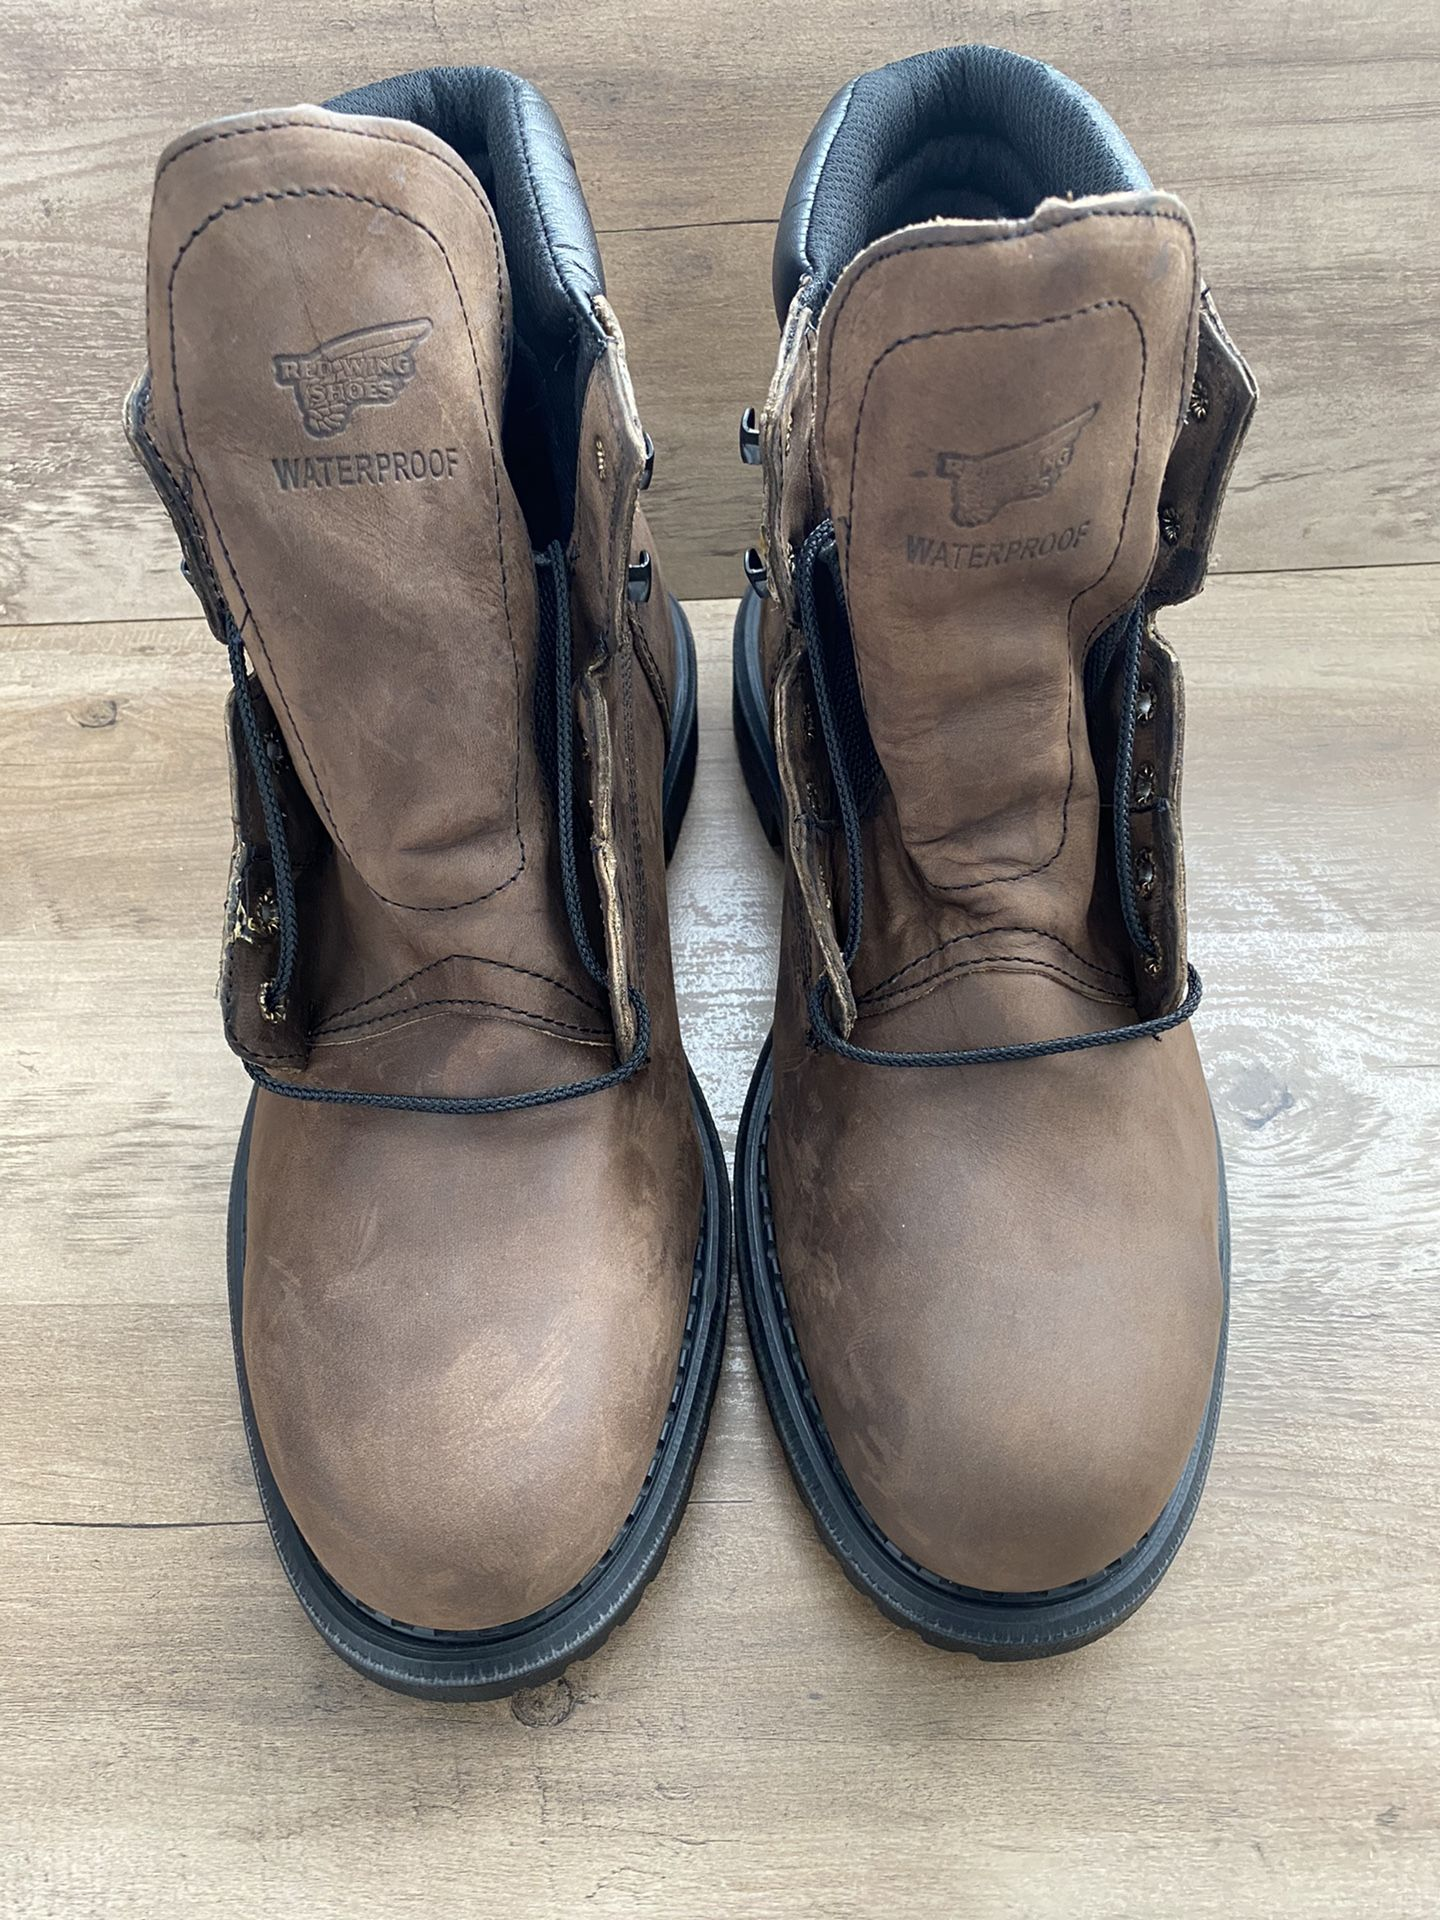 Red Wing Work Boots 2206 6-Inch Steel Toe Insulated Waterproof Size 13 E2 ASTM